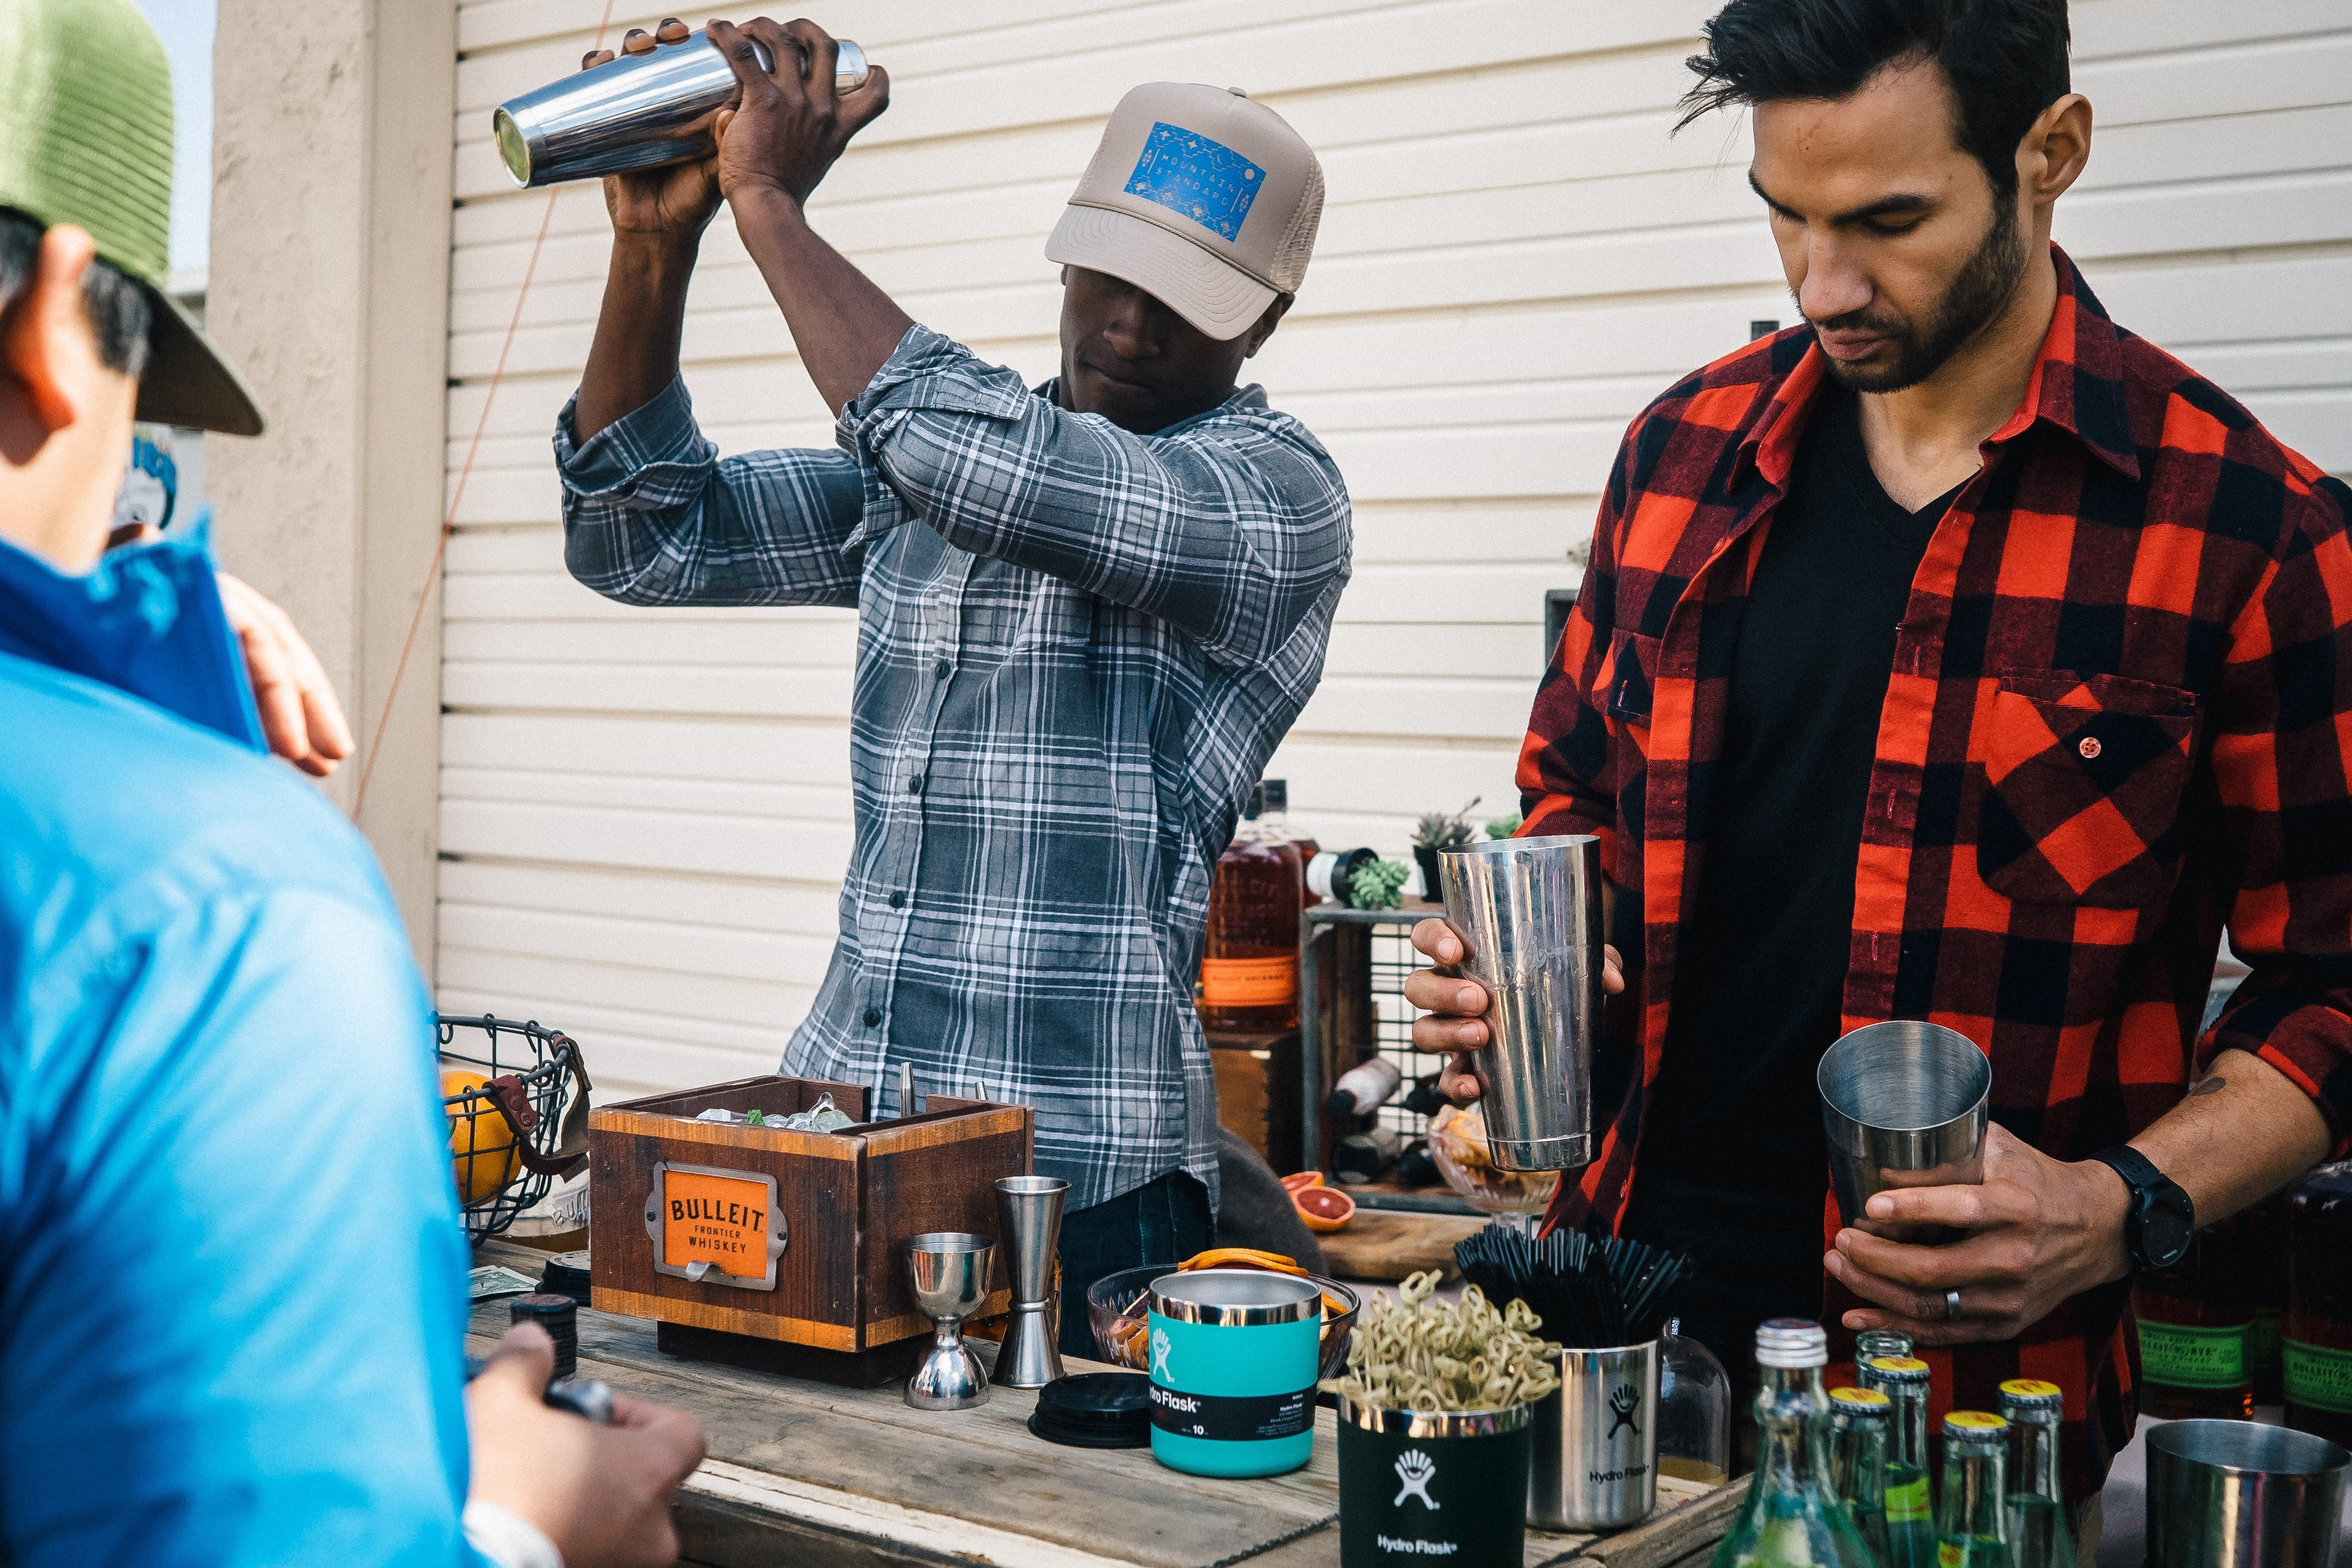 Bulleit Whiskey served in Hydroflask tumblers.